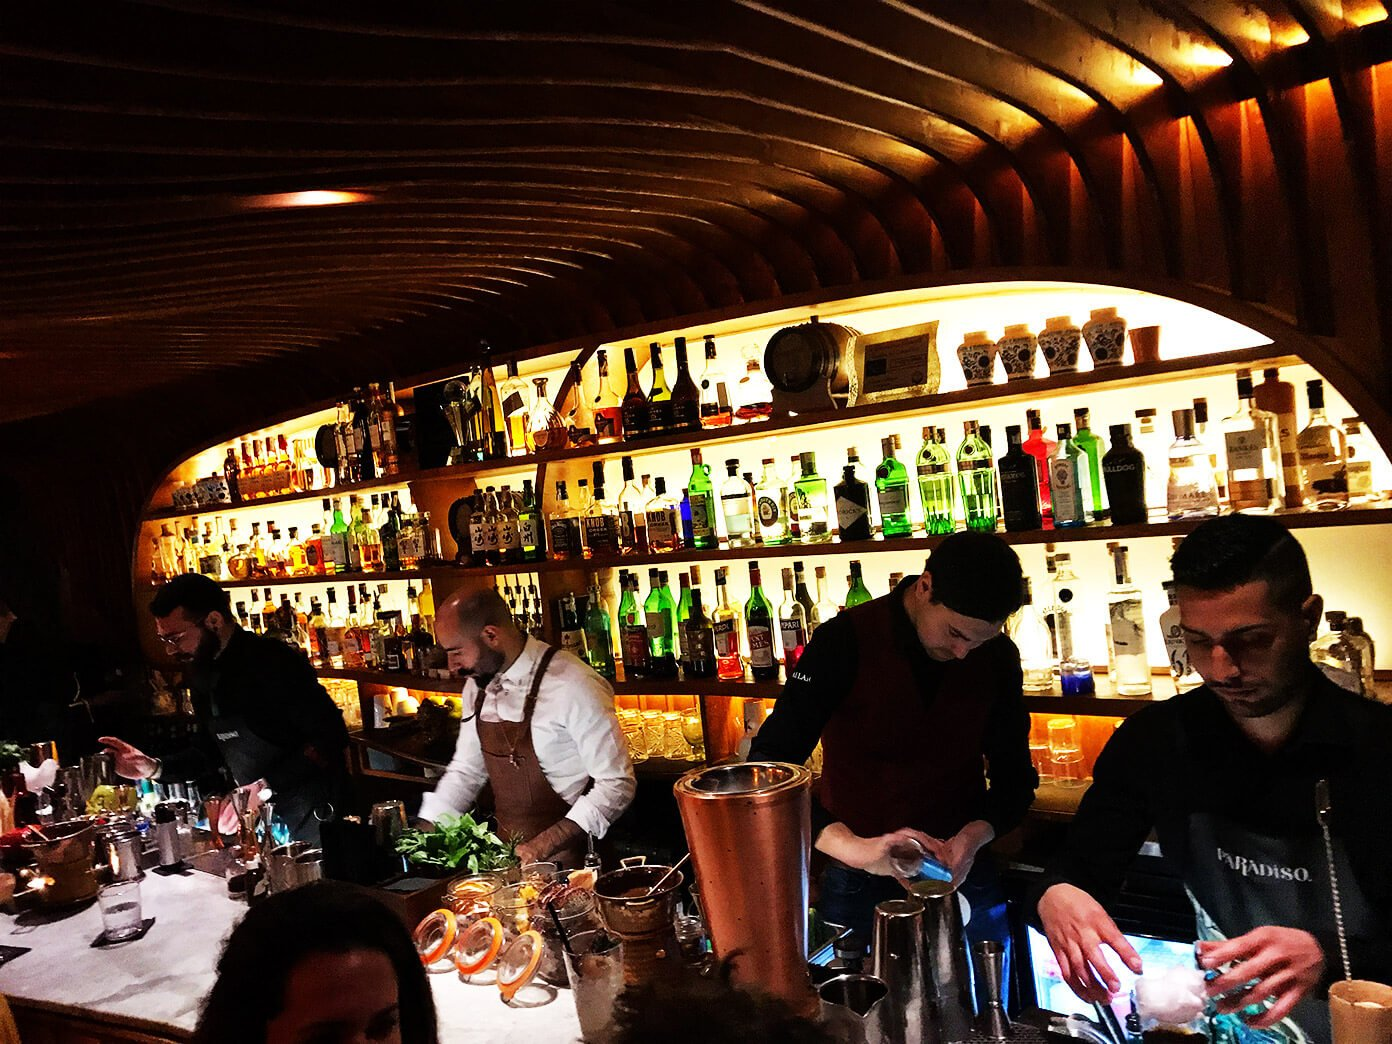 Paradiso - speakeasy-style bar with serious presentation | Gimme Some Barcelona Travel Guide